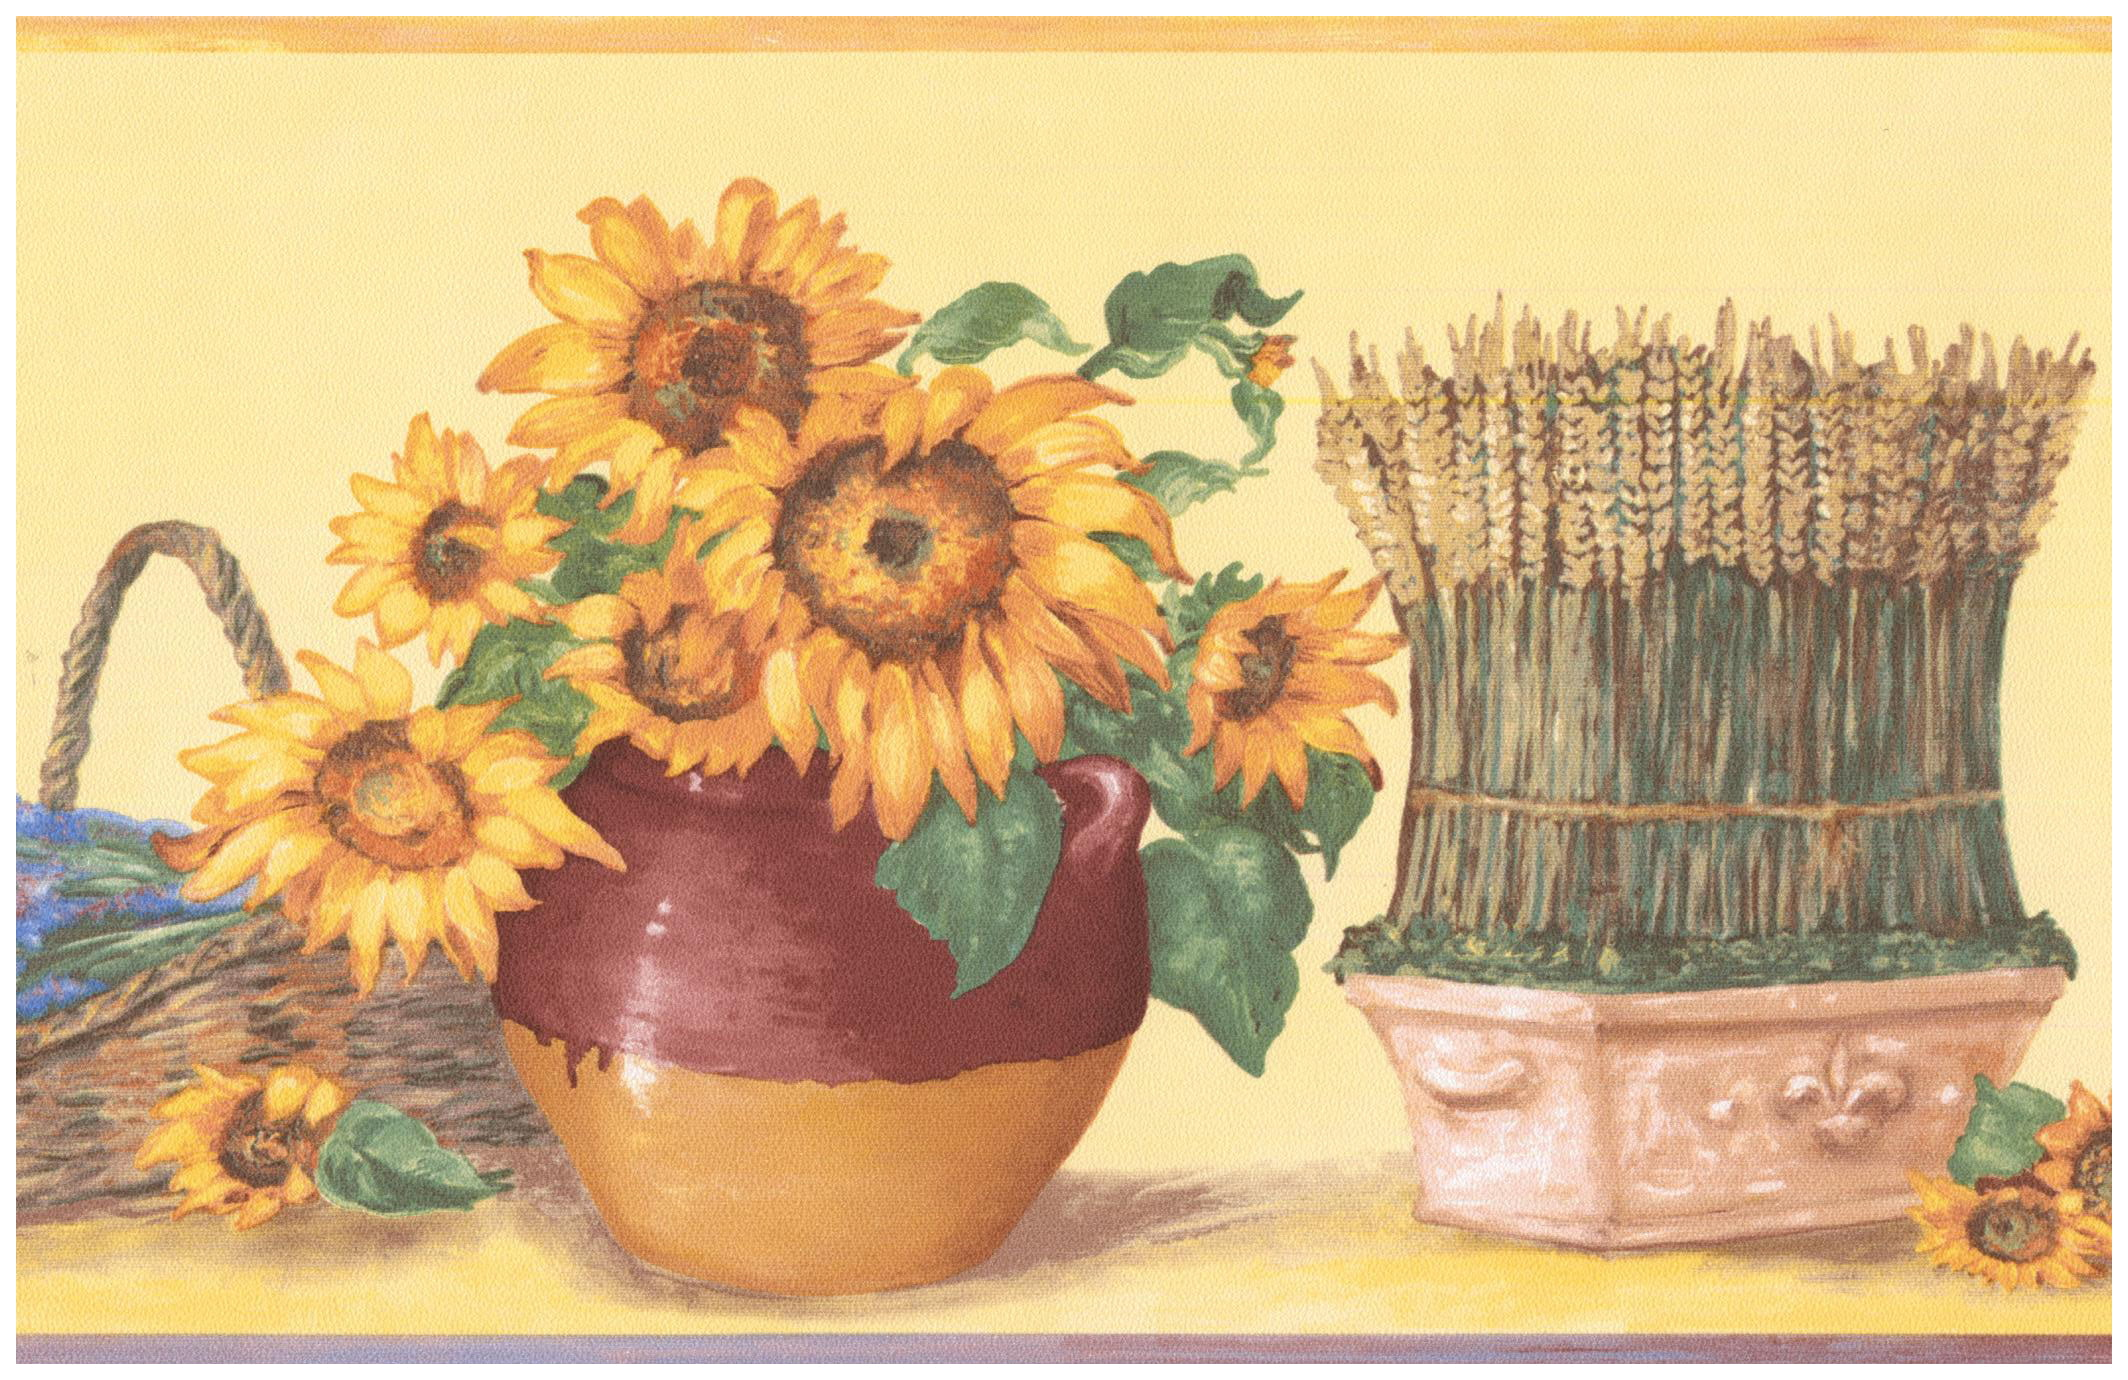 Prepasted Wall Border - Sunflower in Pots Lavender Bunch ...